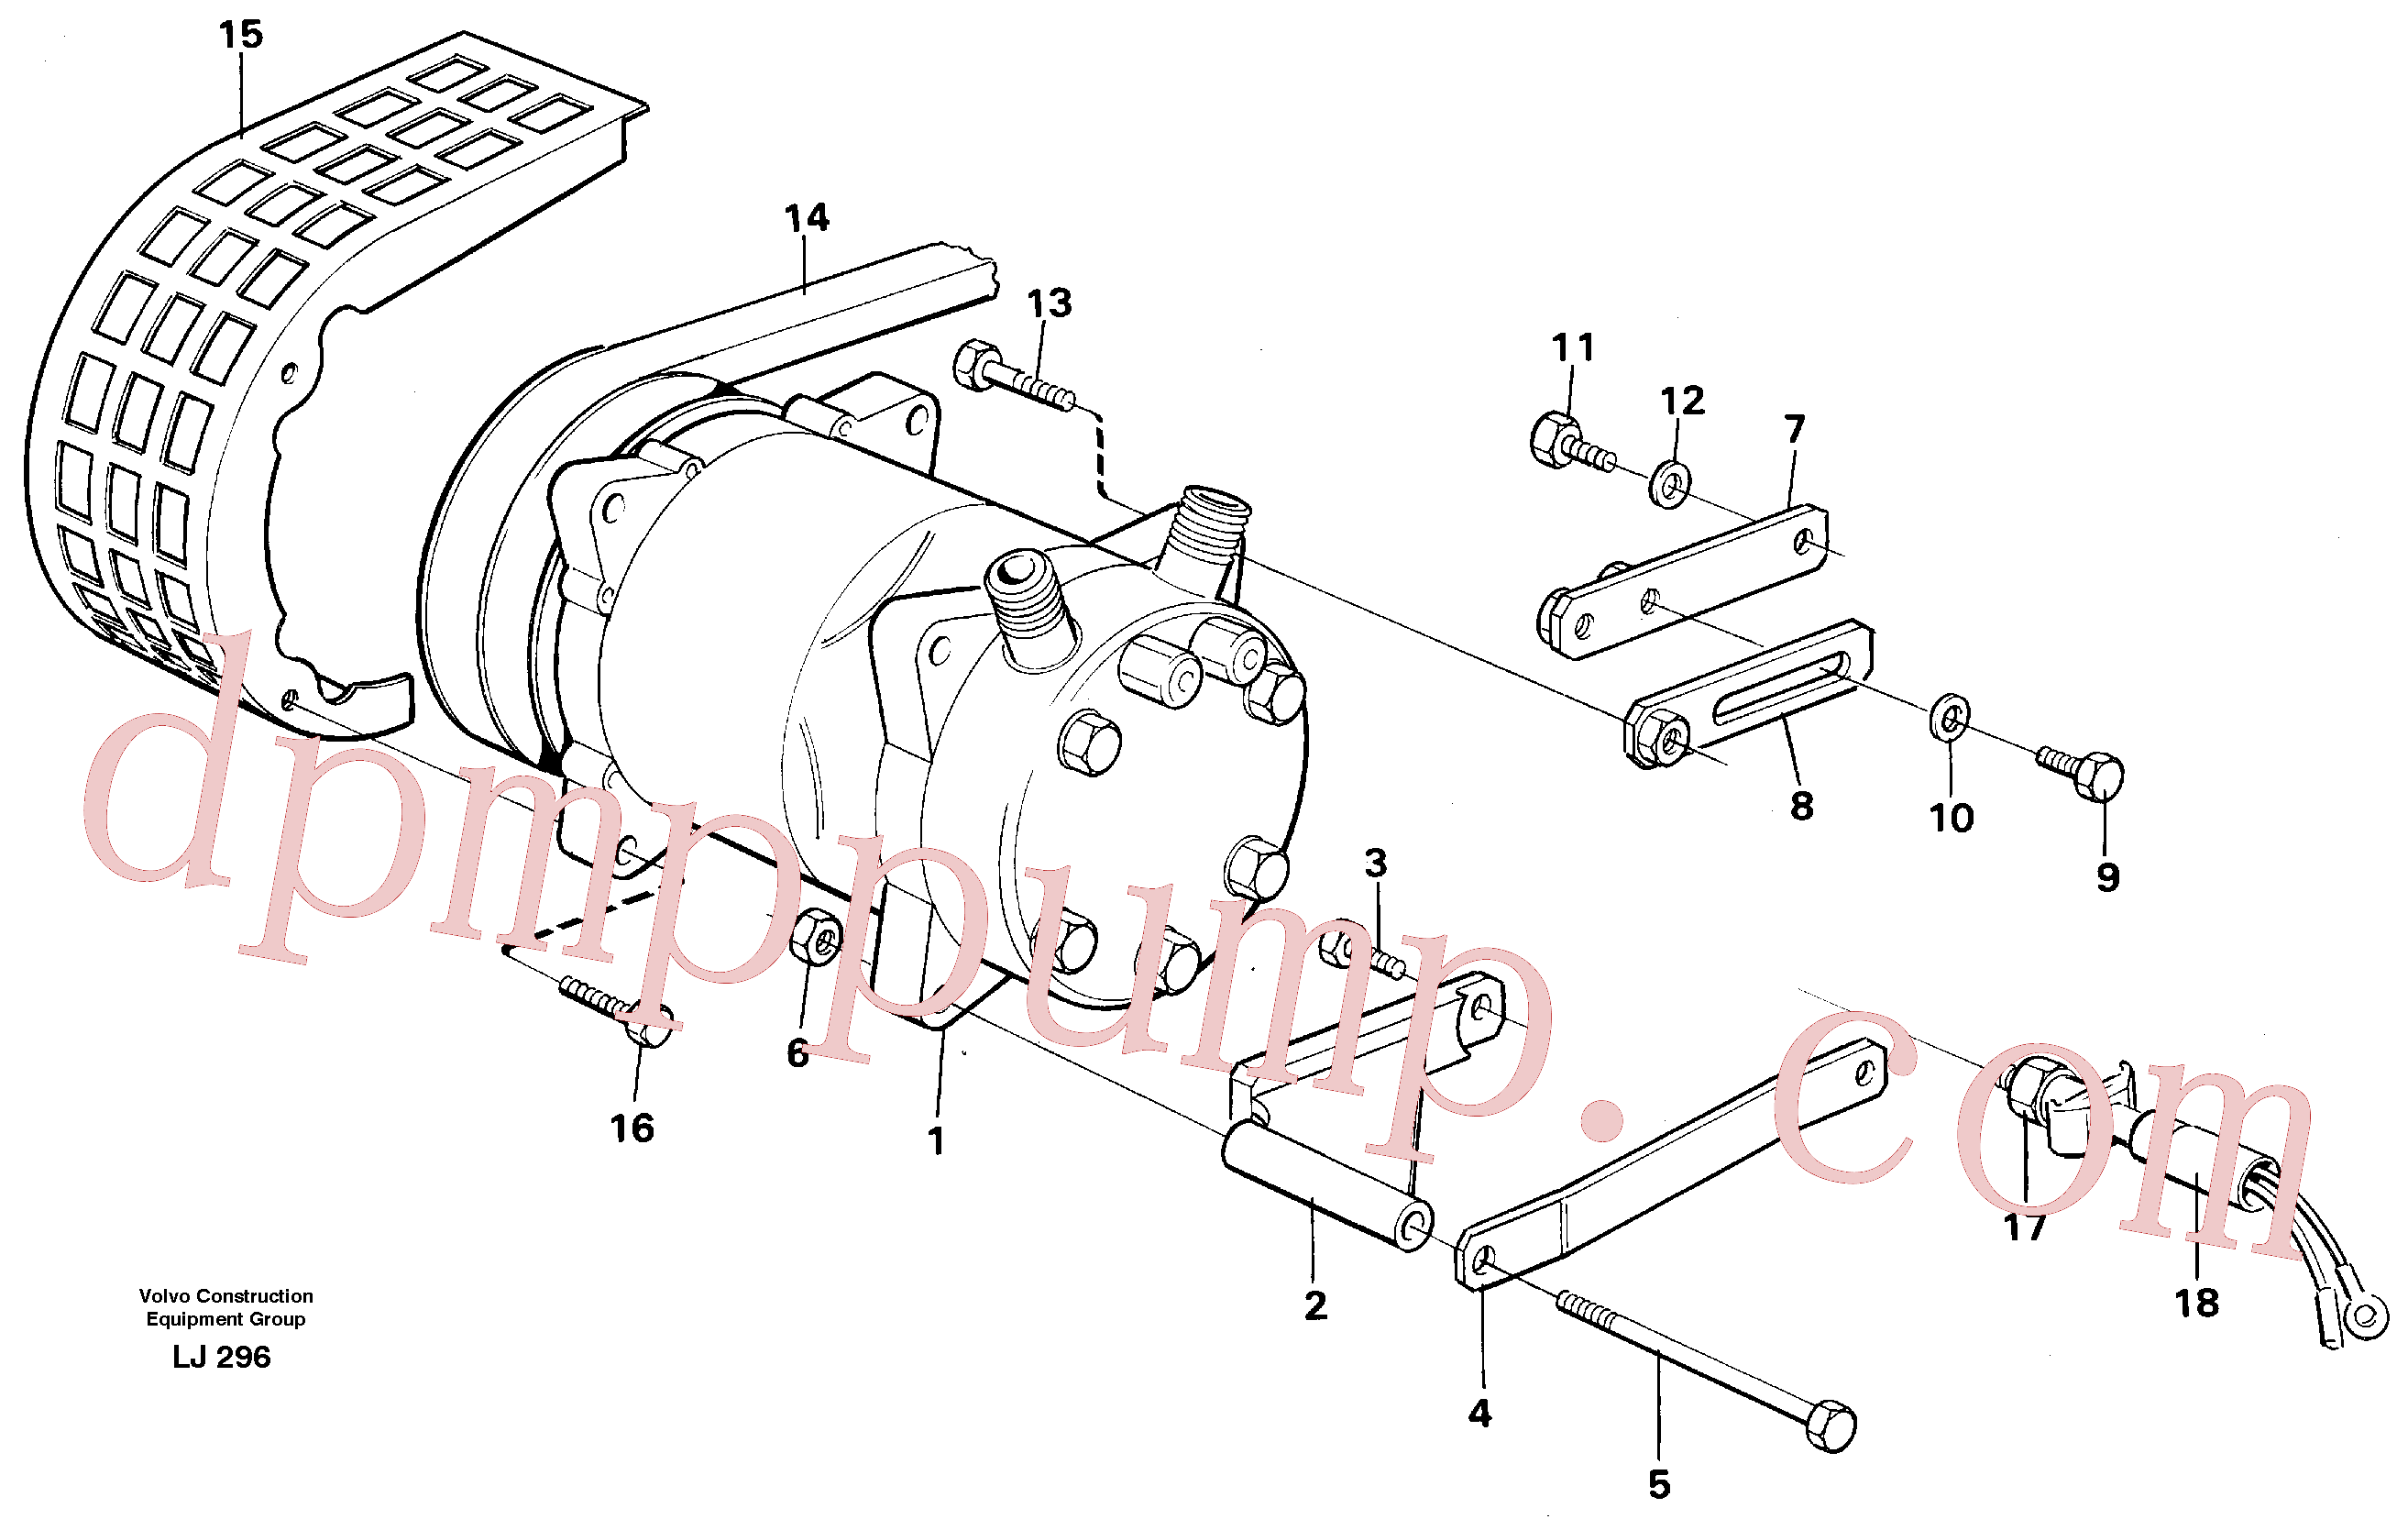 VOE14247400 for Volvo Compressor with fitting parts. Cooling agent, R12(LJ296 assembly)